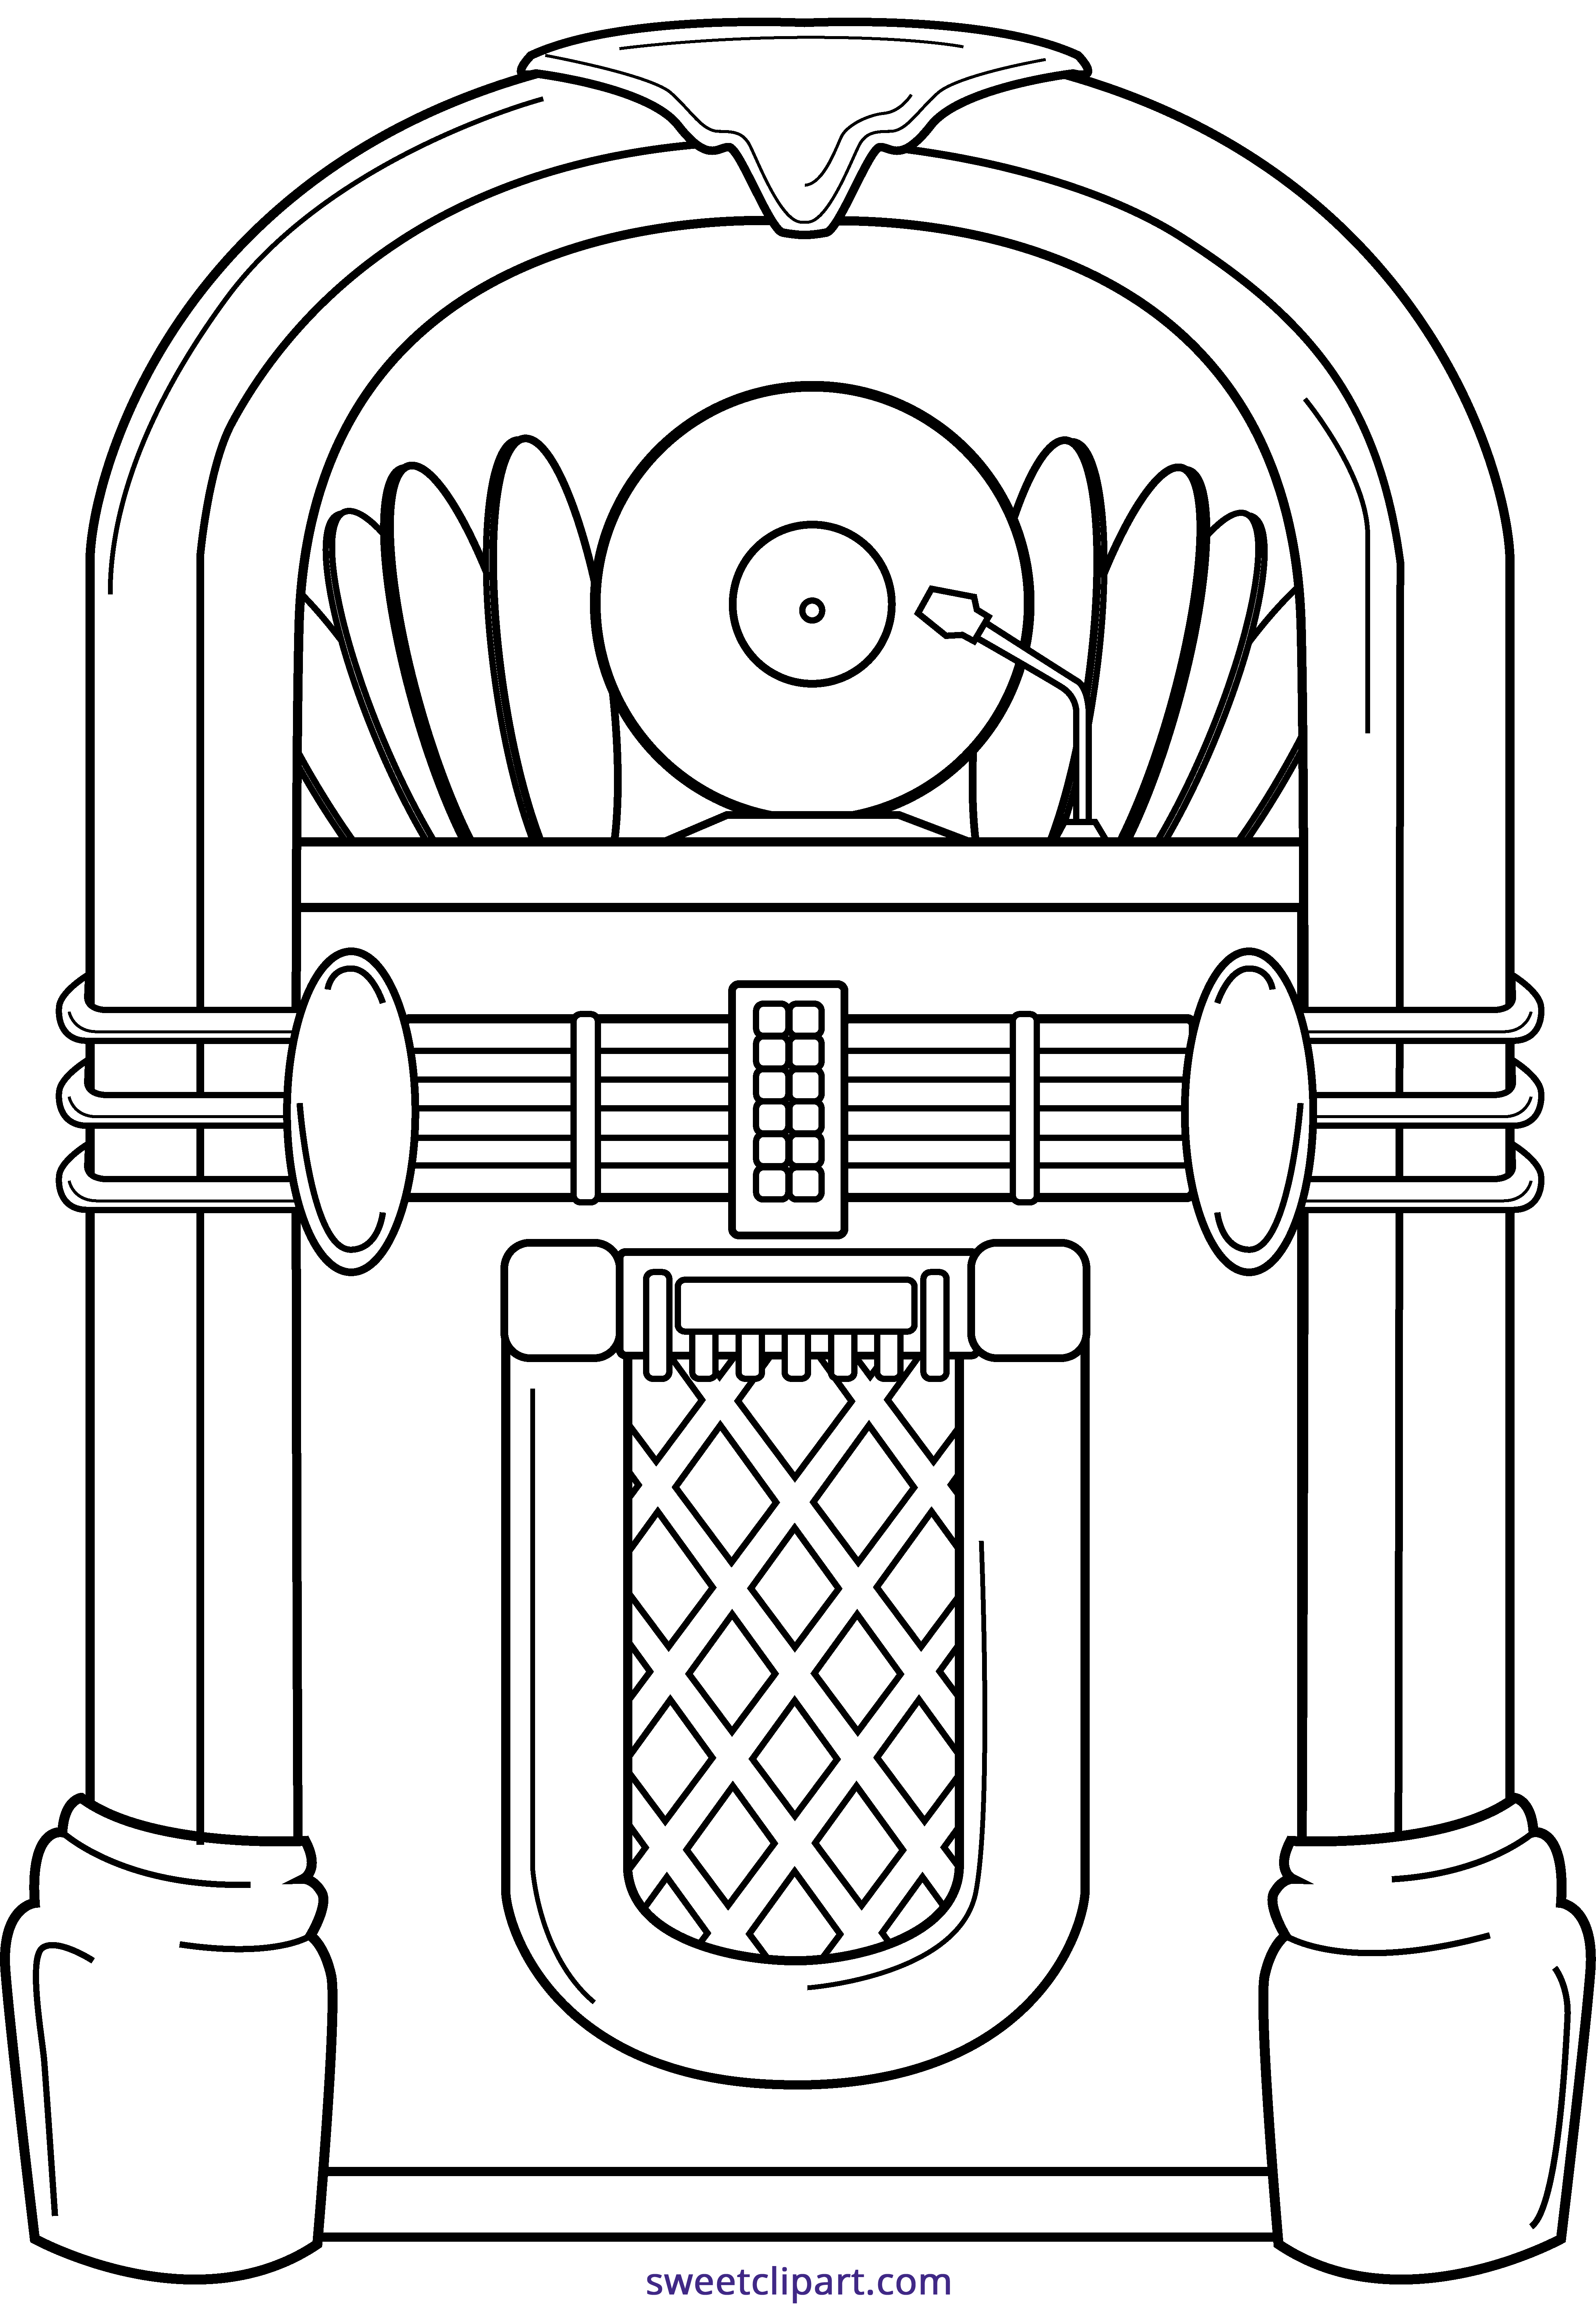 clipart transparent library Jukebox clipart black and white. Line art sweet clip